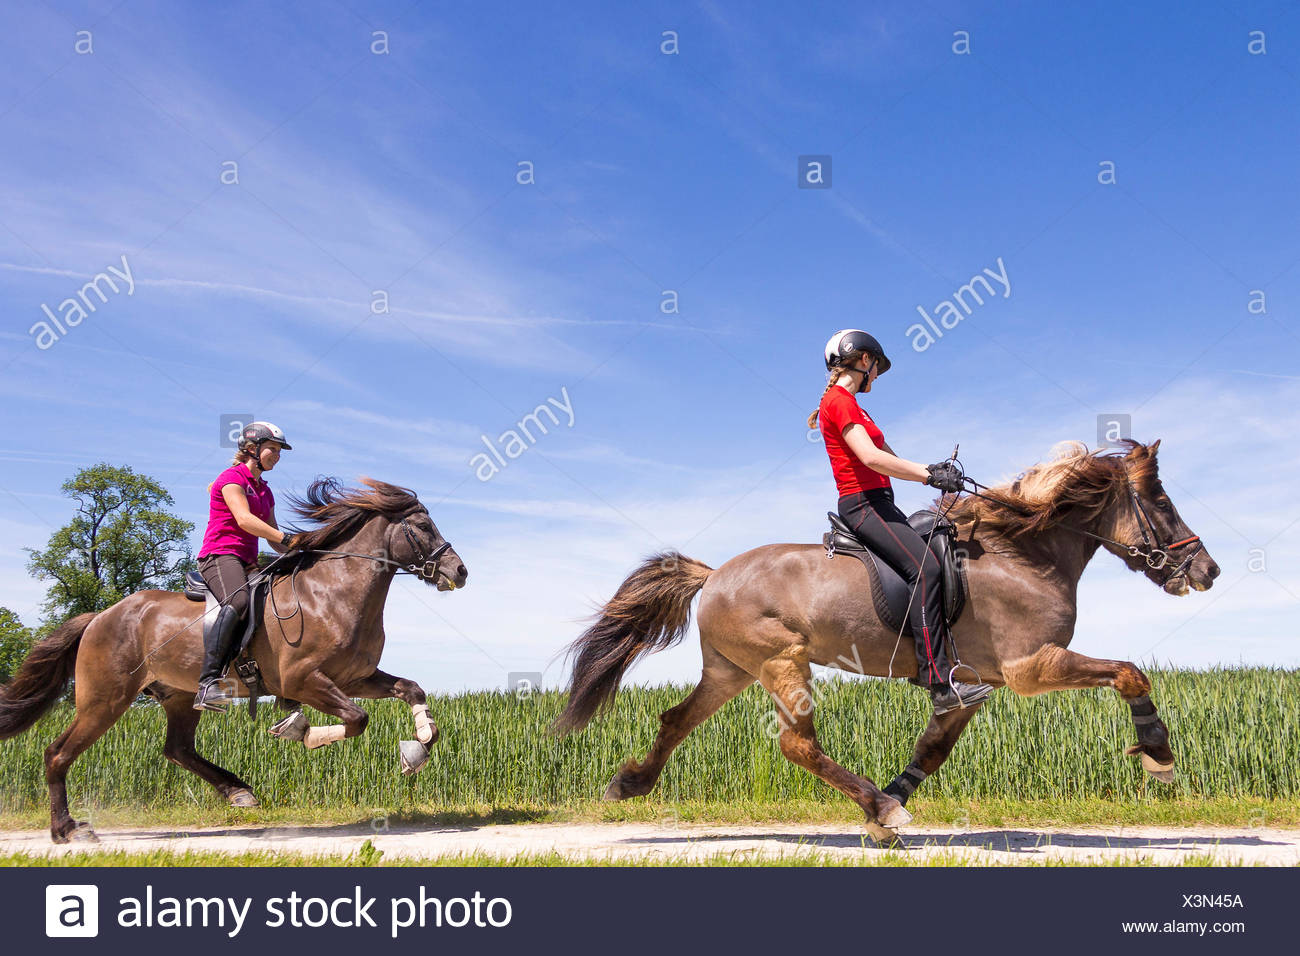 hight resolution of icelandic horse two gaits one hores being ridden at the flying pace the